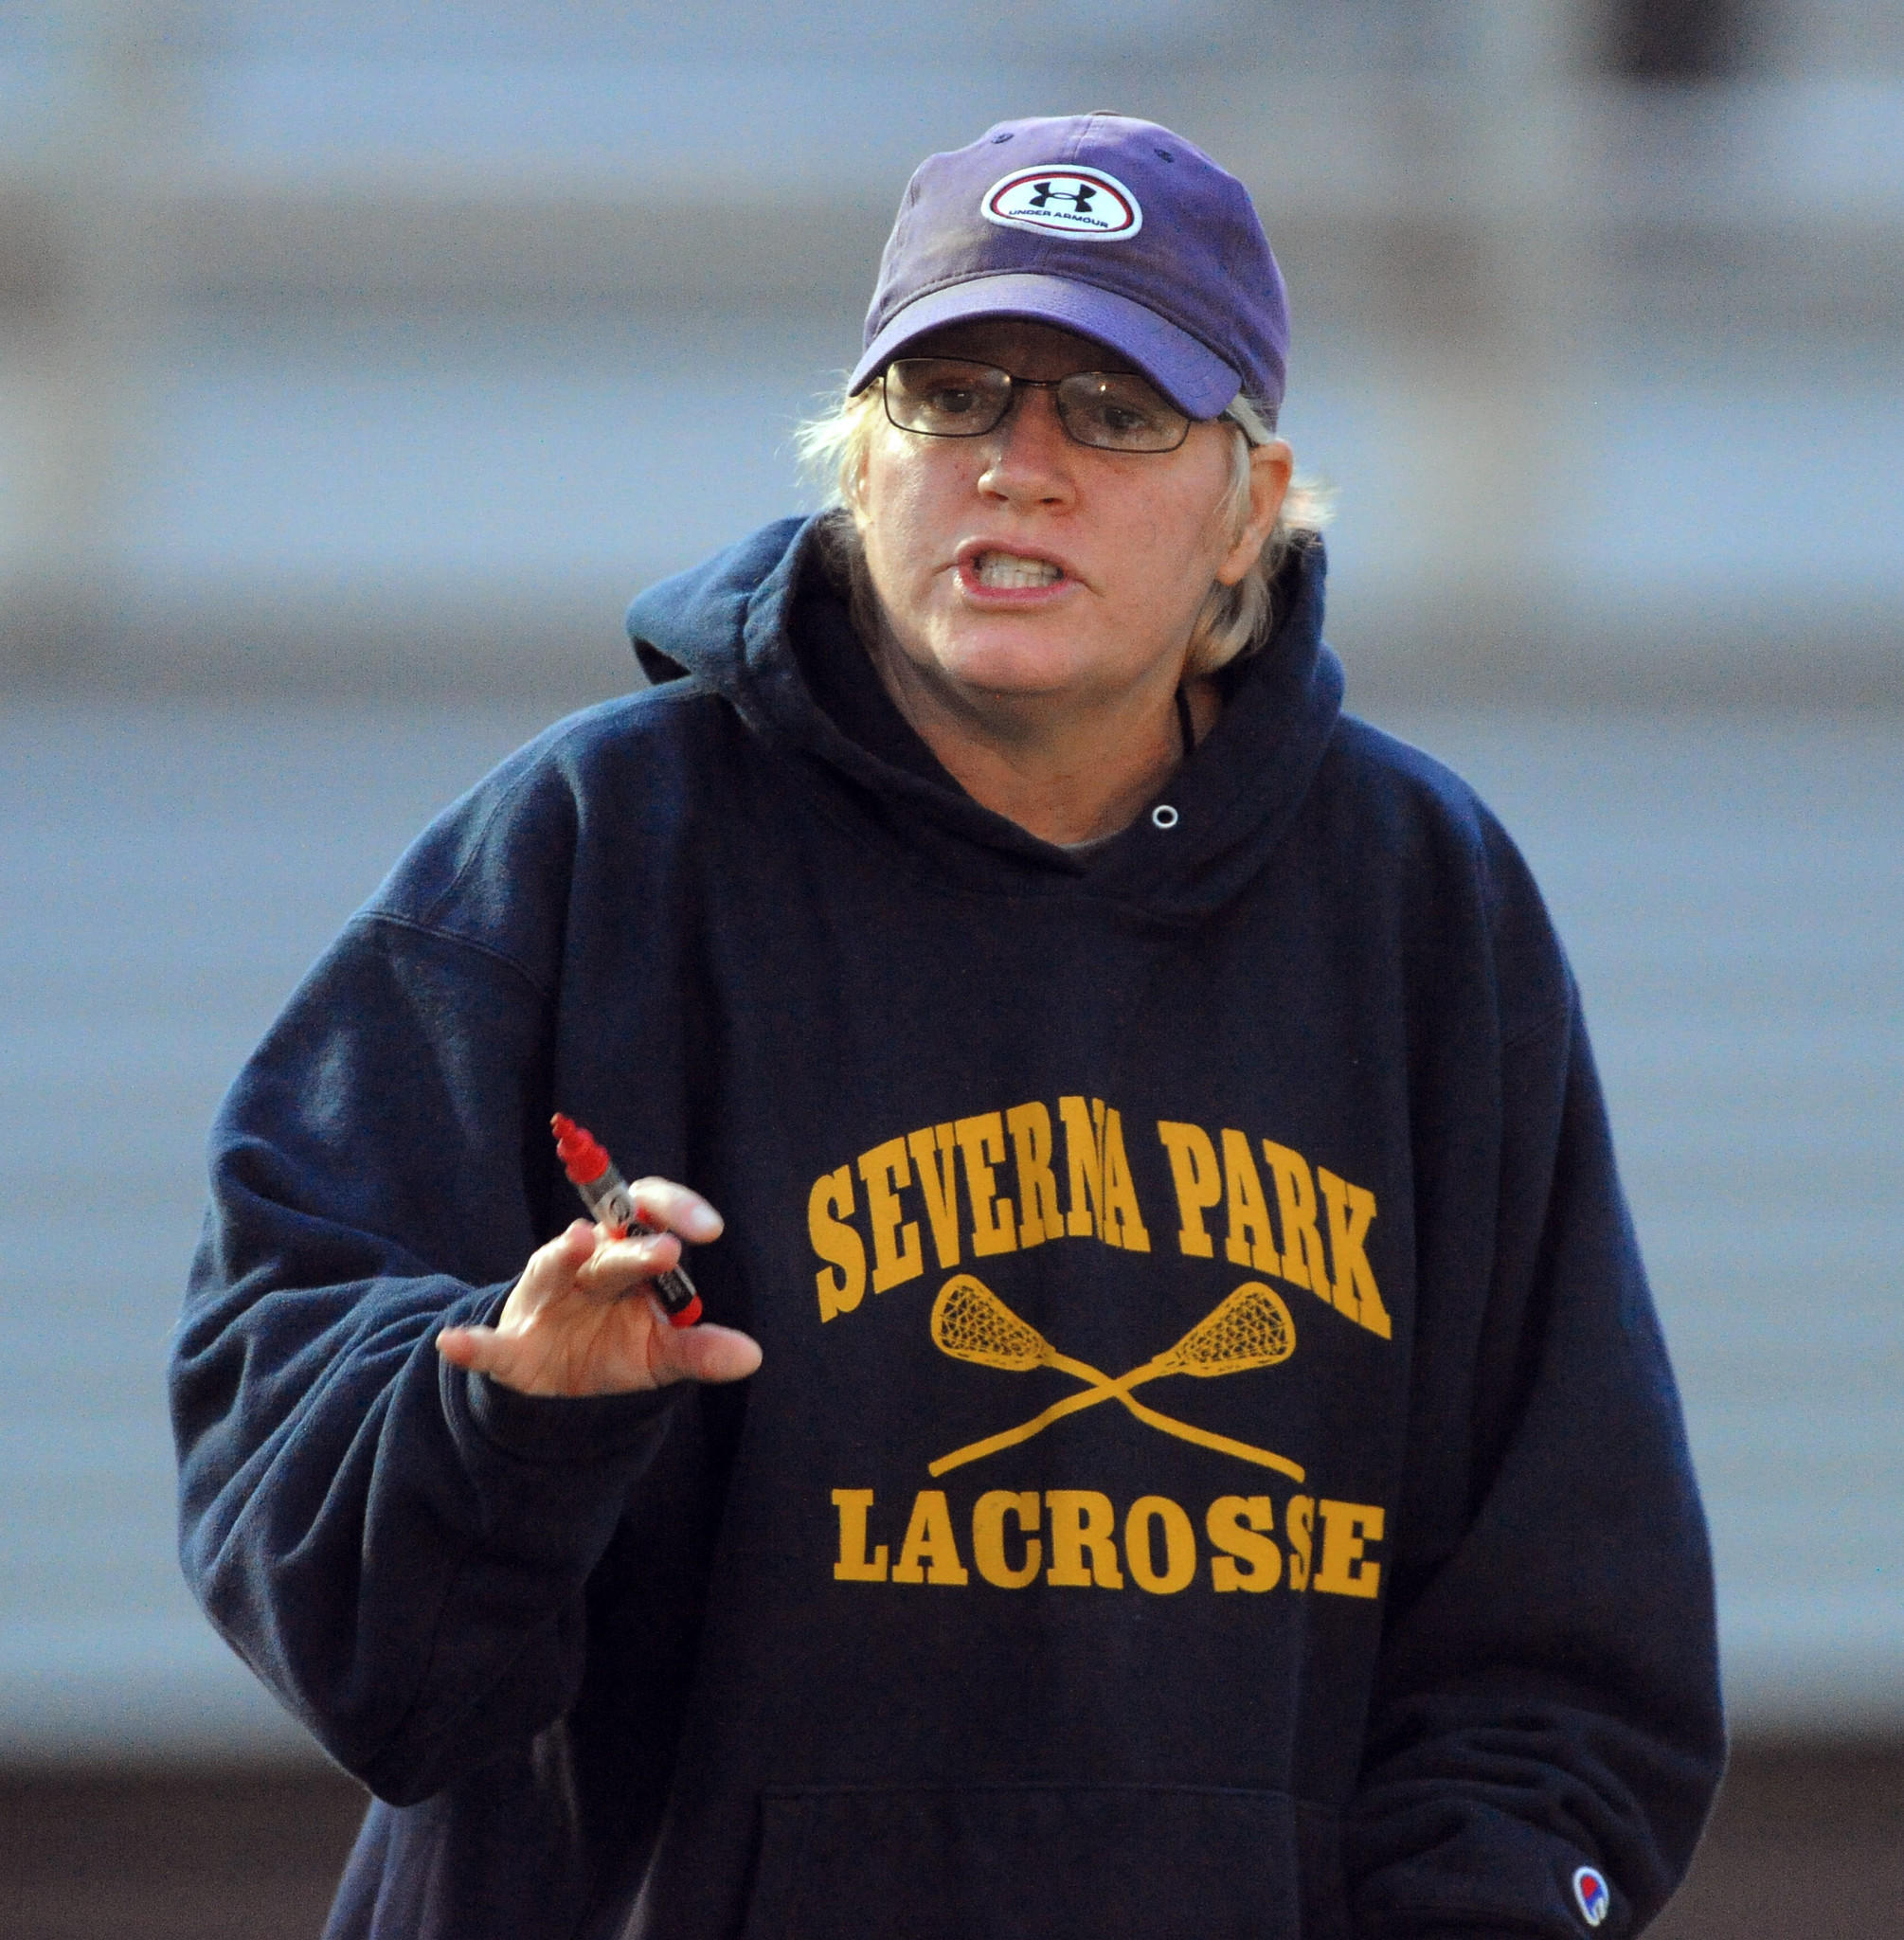 Girls lacrosse coach Carin Peterson coaches Severna Park in April.